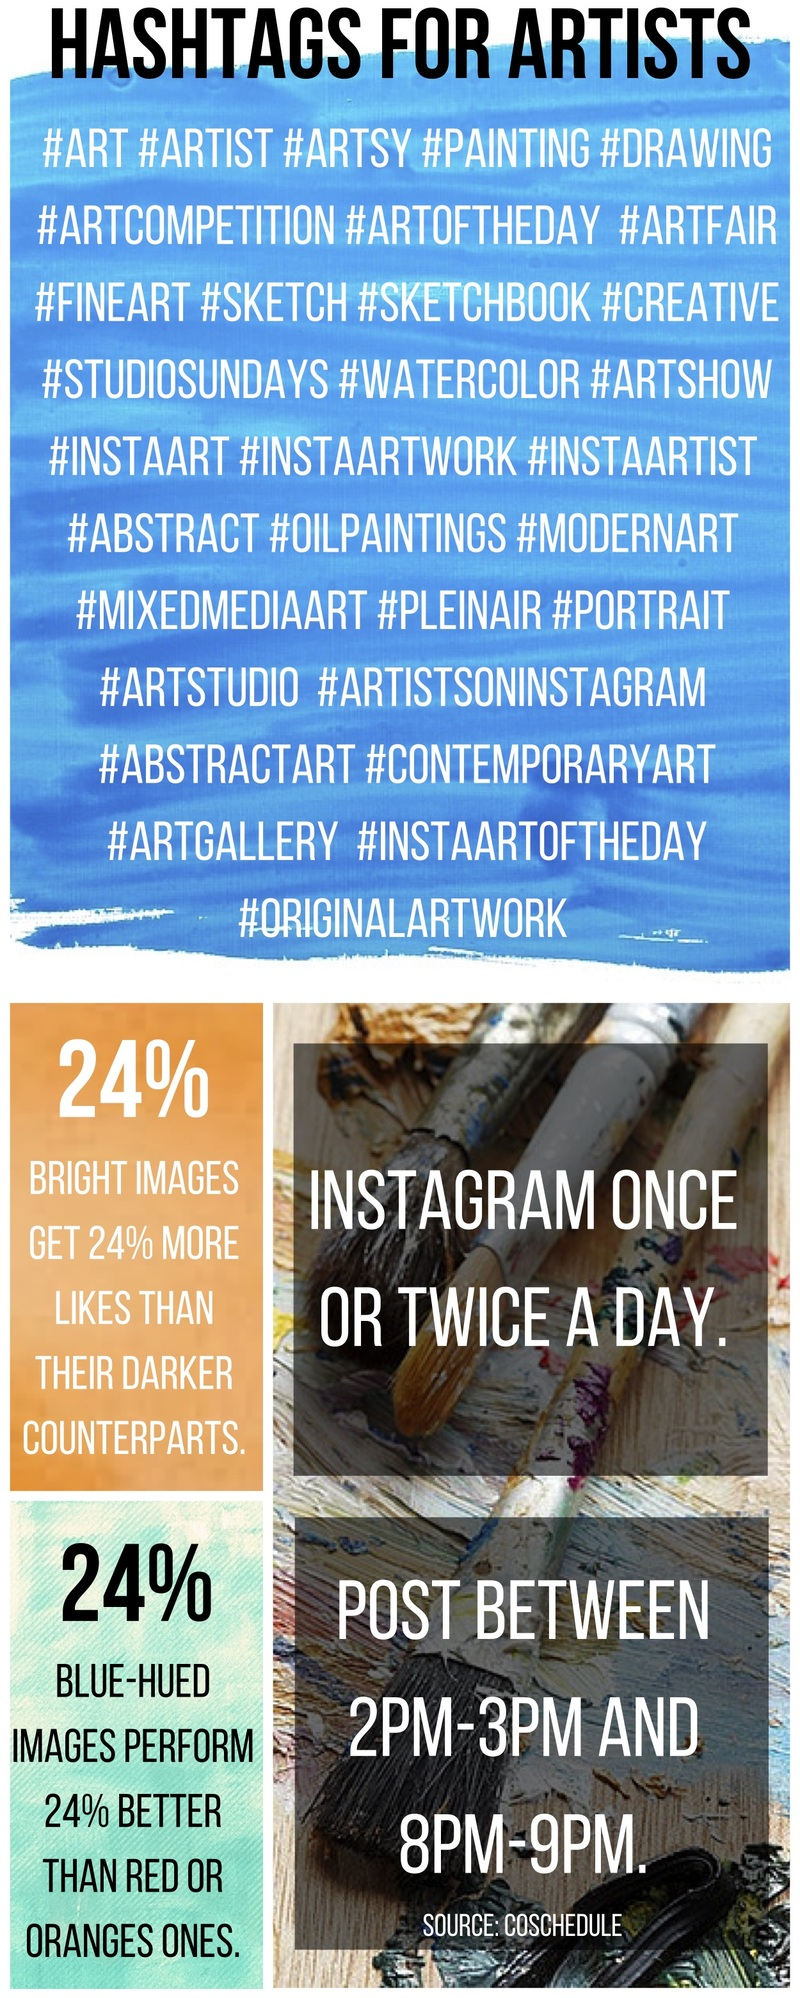 How to Snap Your Way to Art Success on Instagram | Artwork